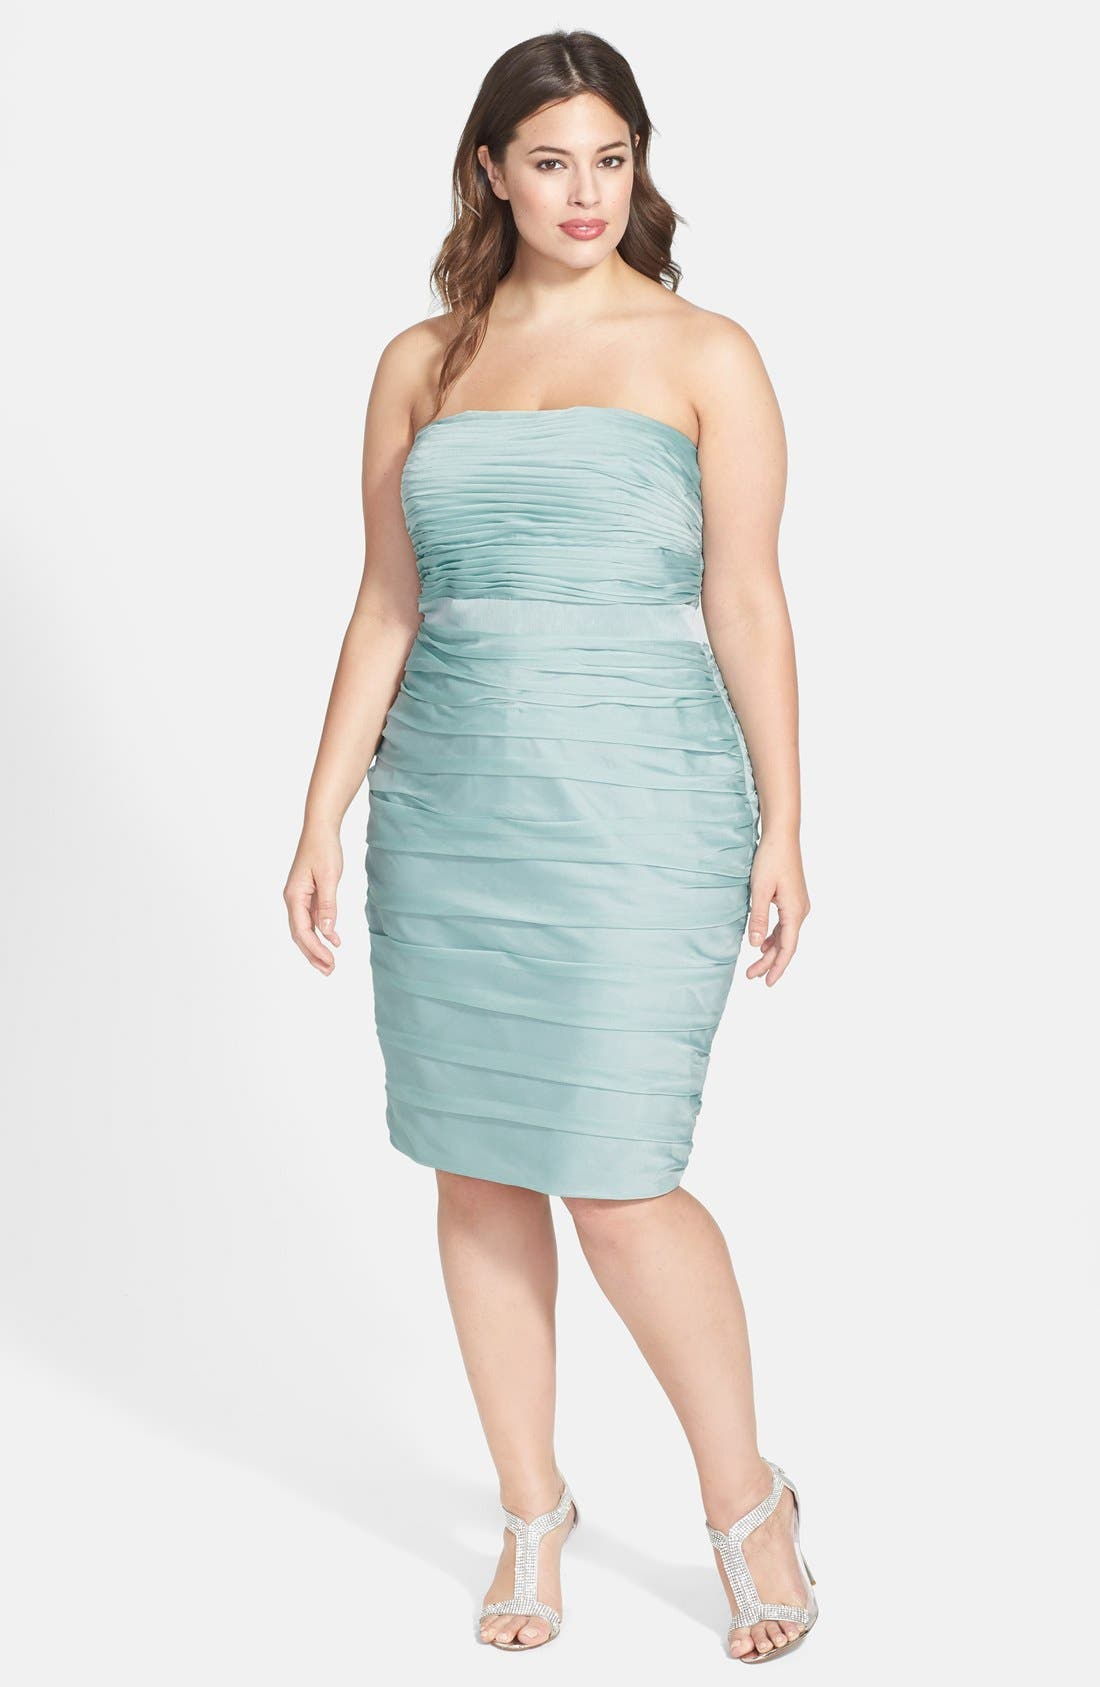 Main Image - ML Monique Lhuillier Bridesmaids Ruched Strapless Cationic Chiffon Dress (Nordstrom Exclusive) (Plus Size)